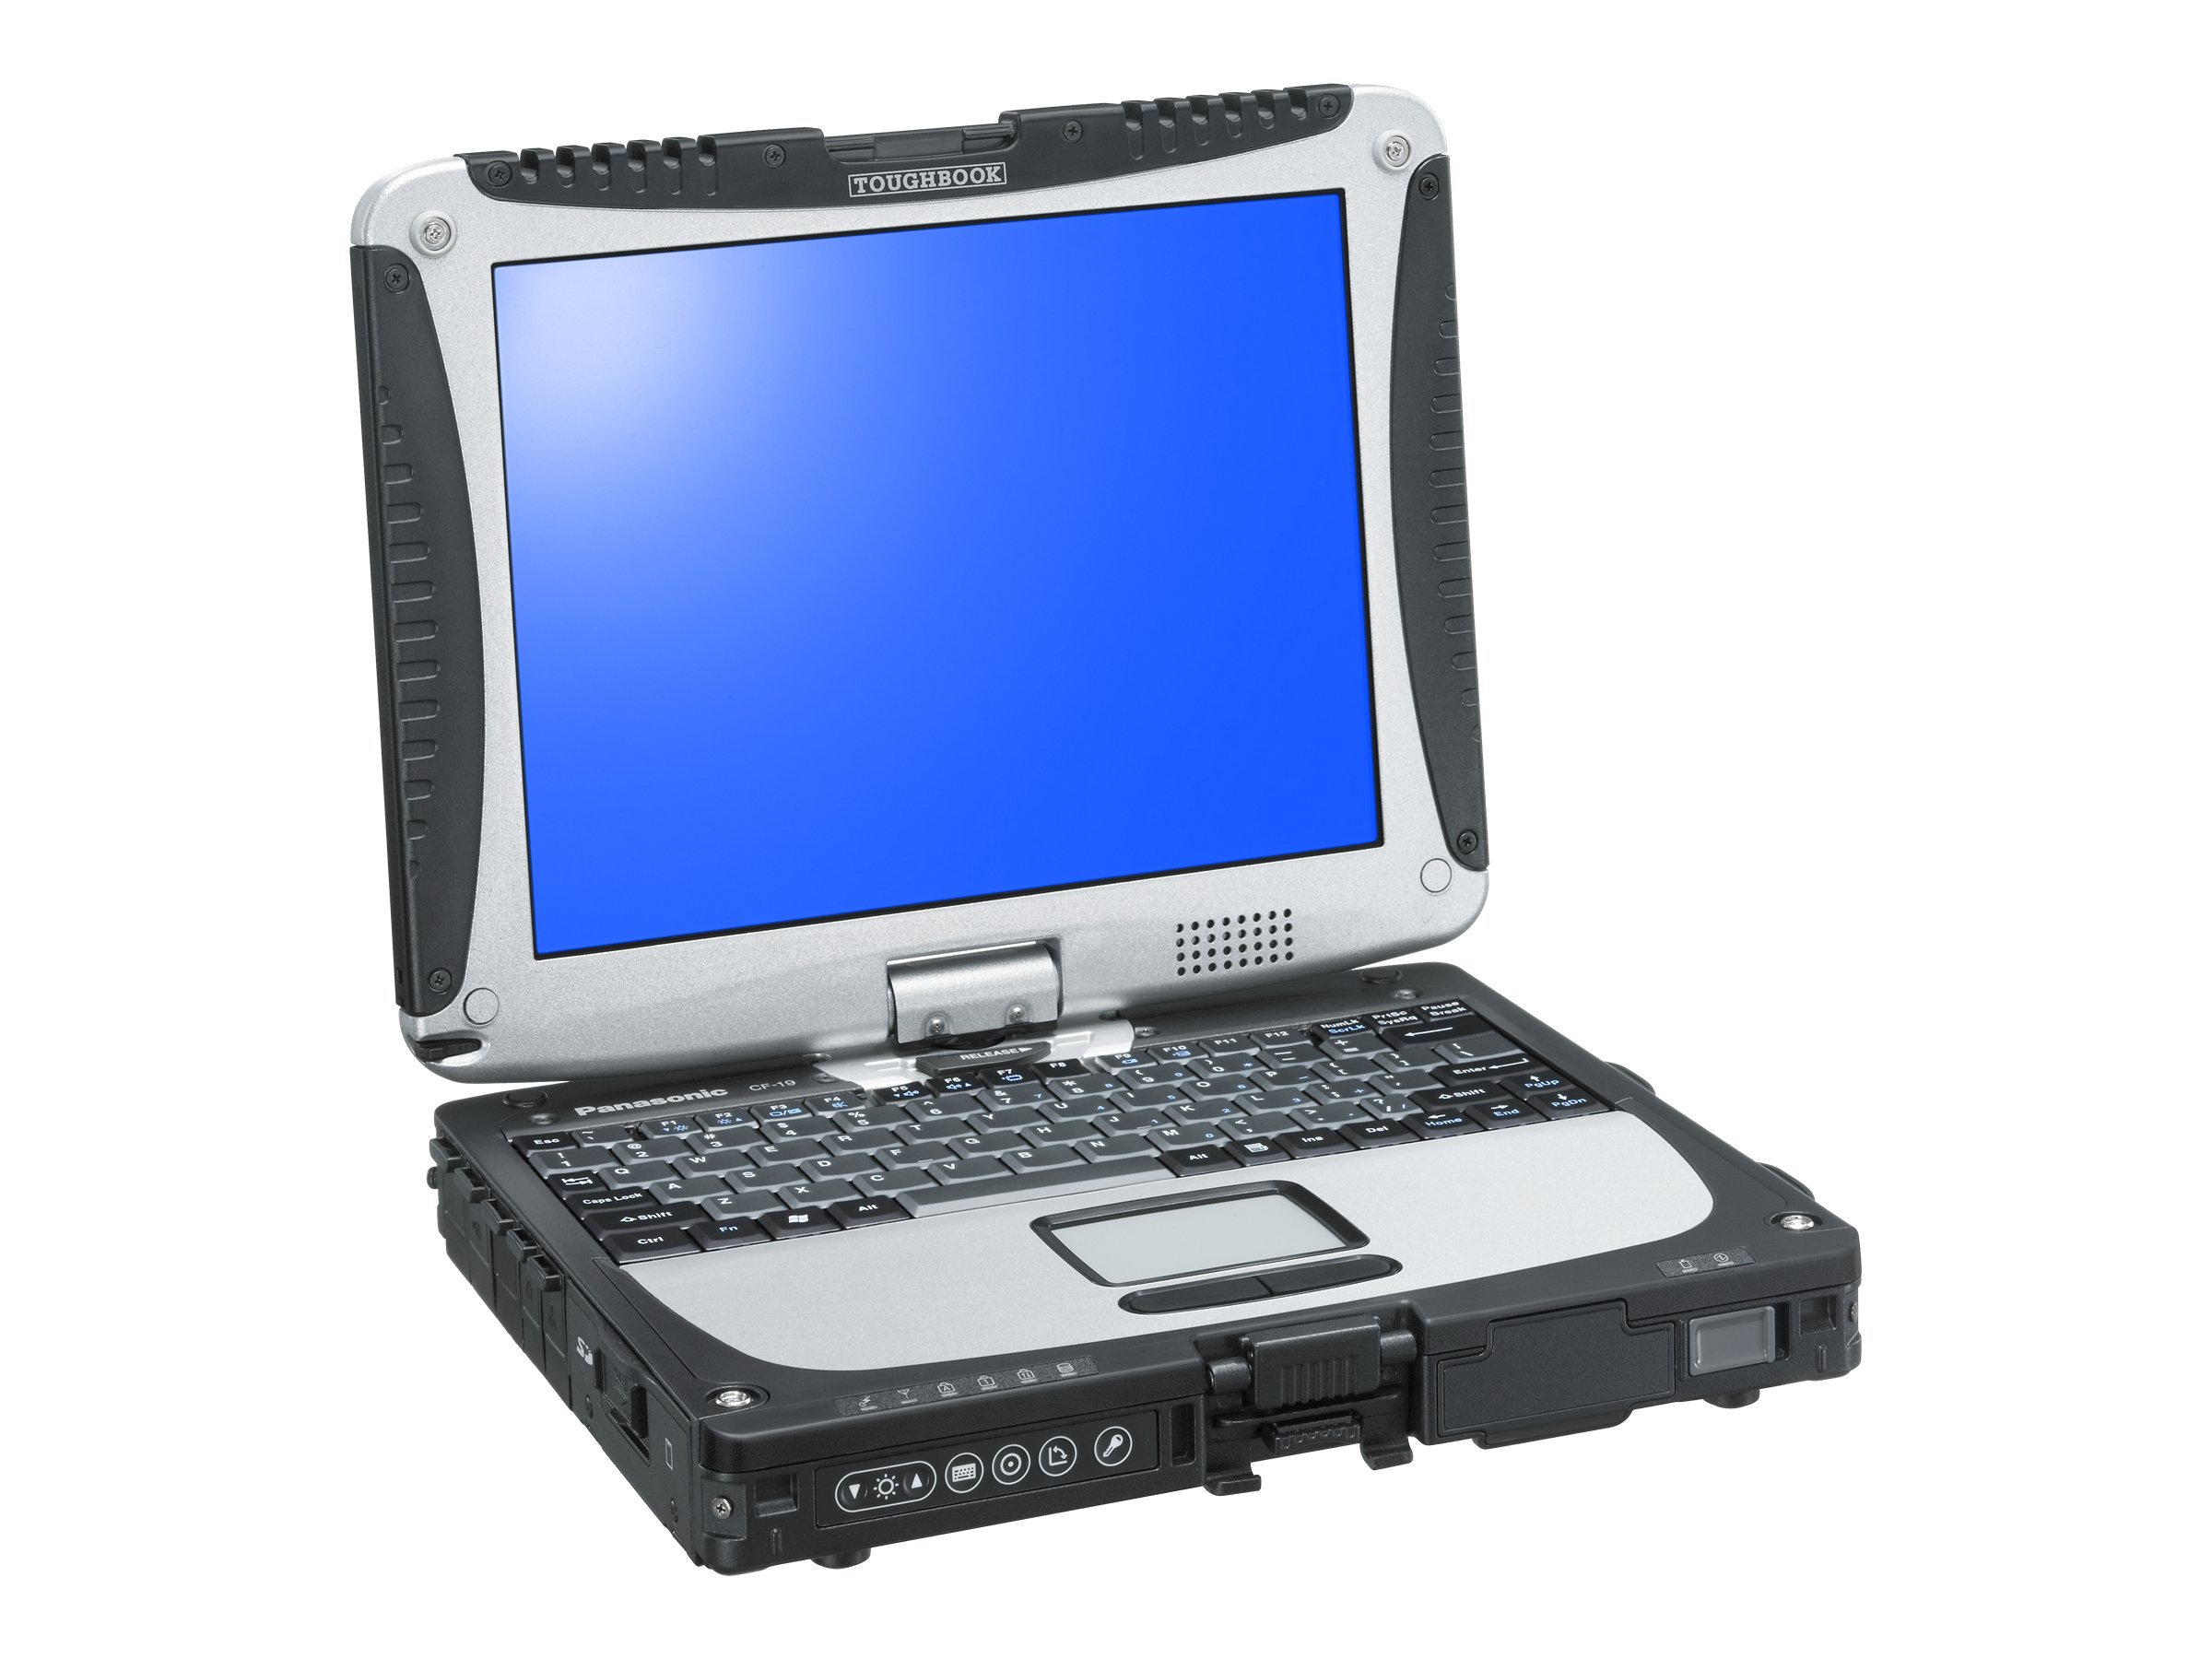 Panasonic Toughbook 19 vPro Core i5-3610ME 2.7GHz 500GB (7200RPM) 10.1 XGA MT W8.1P